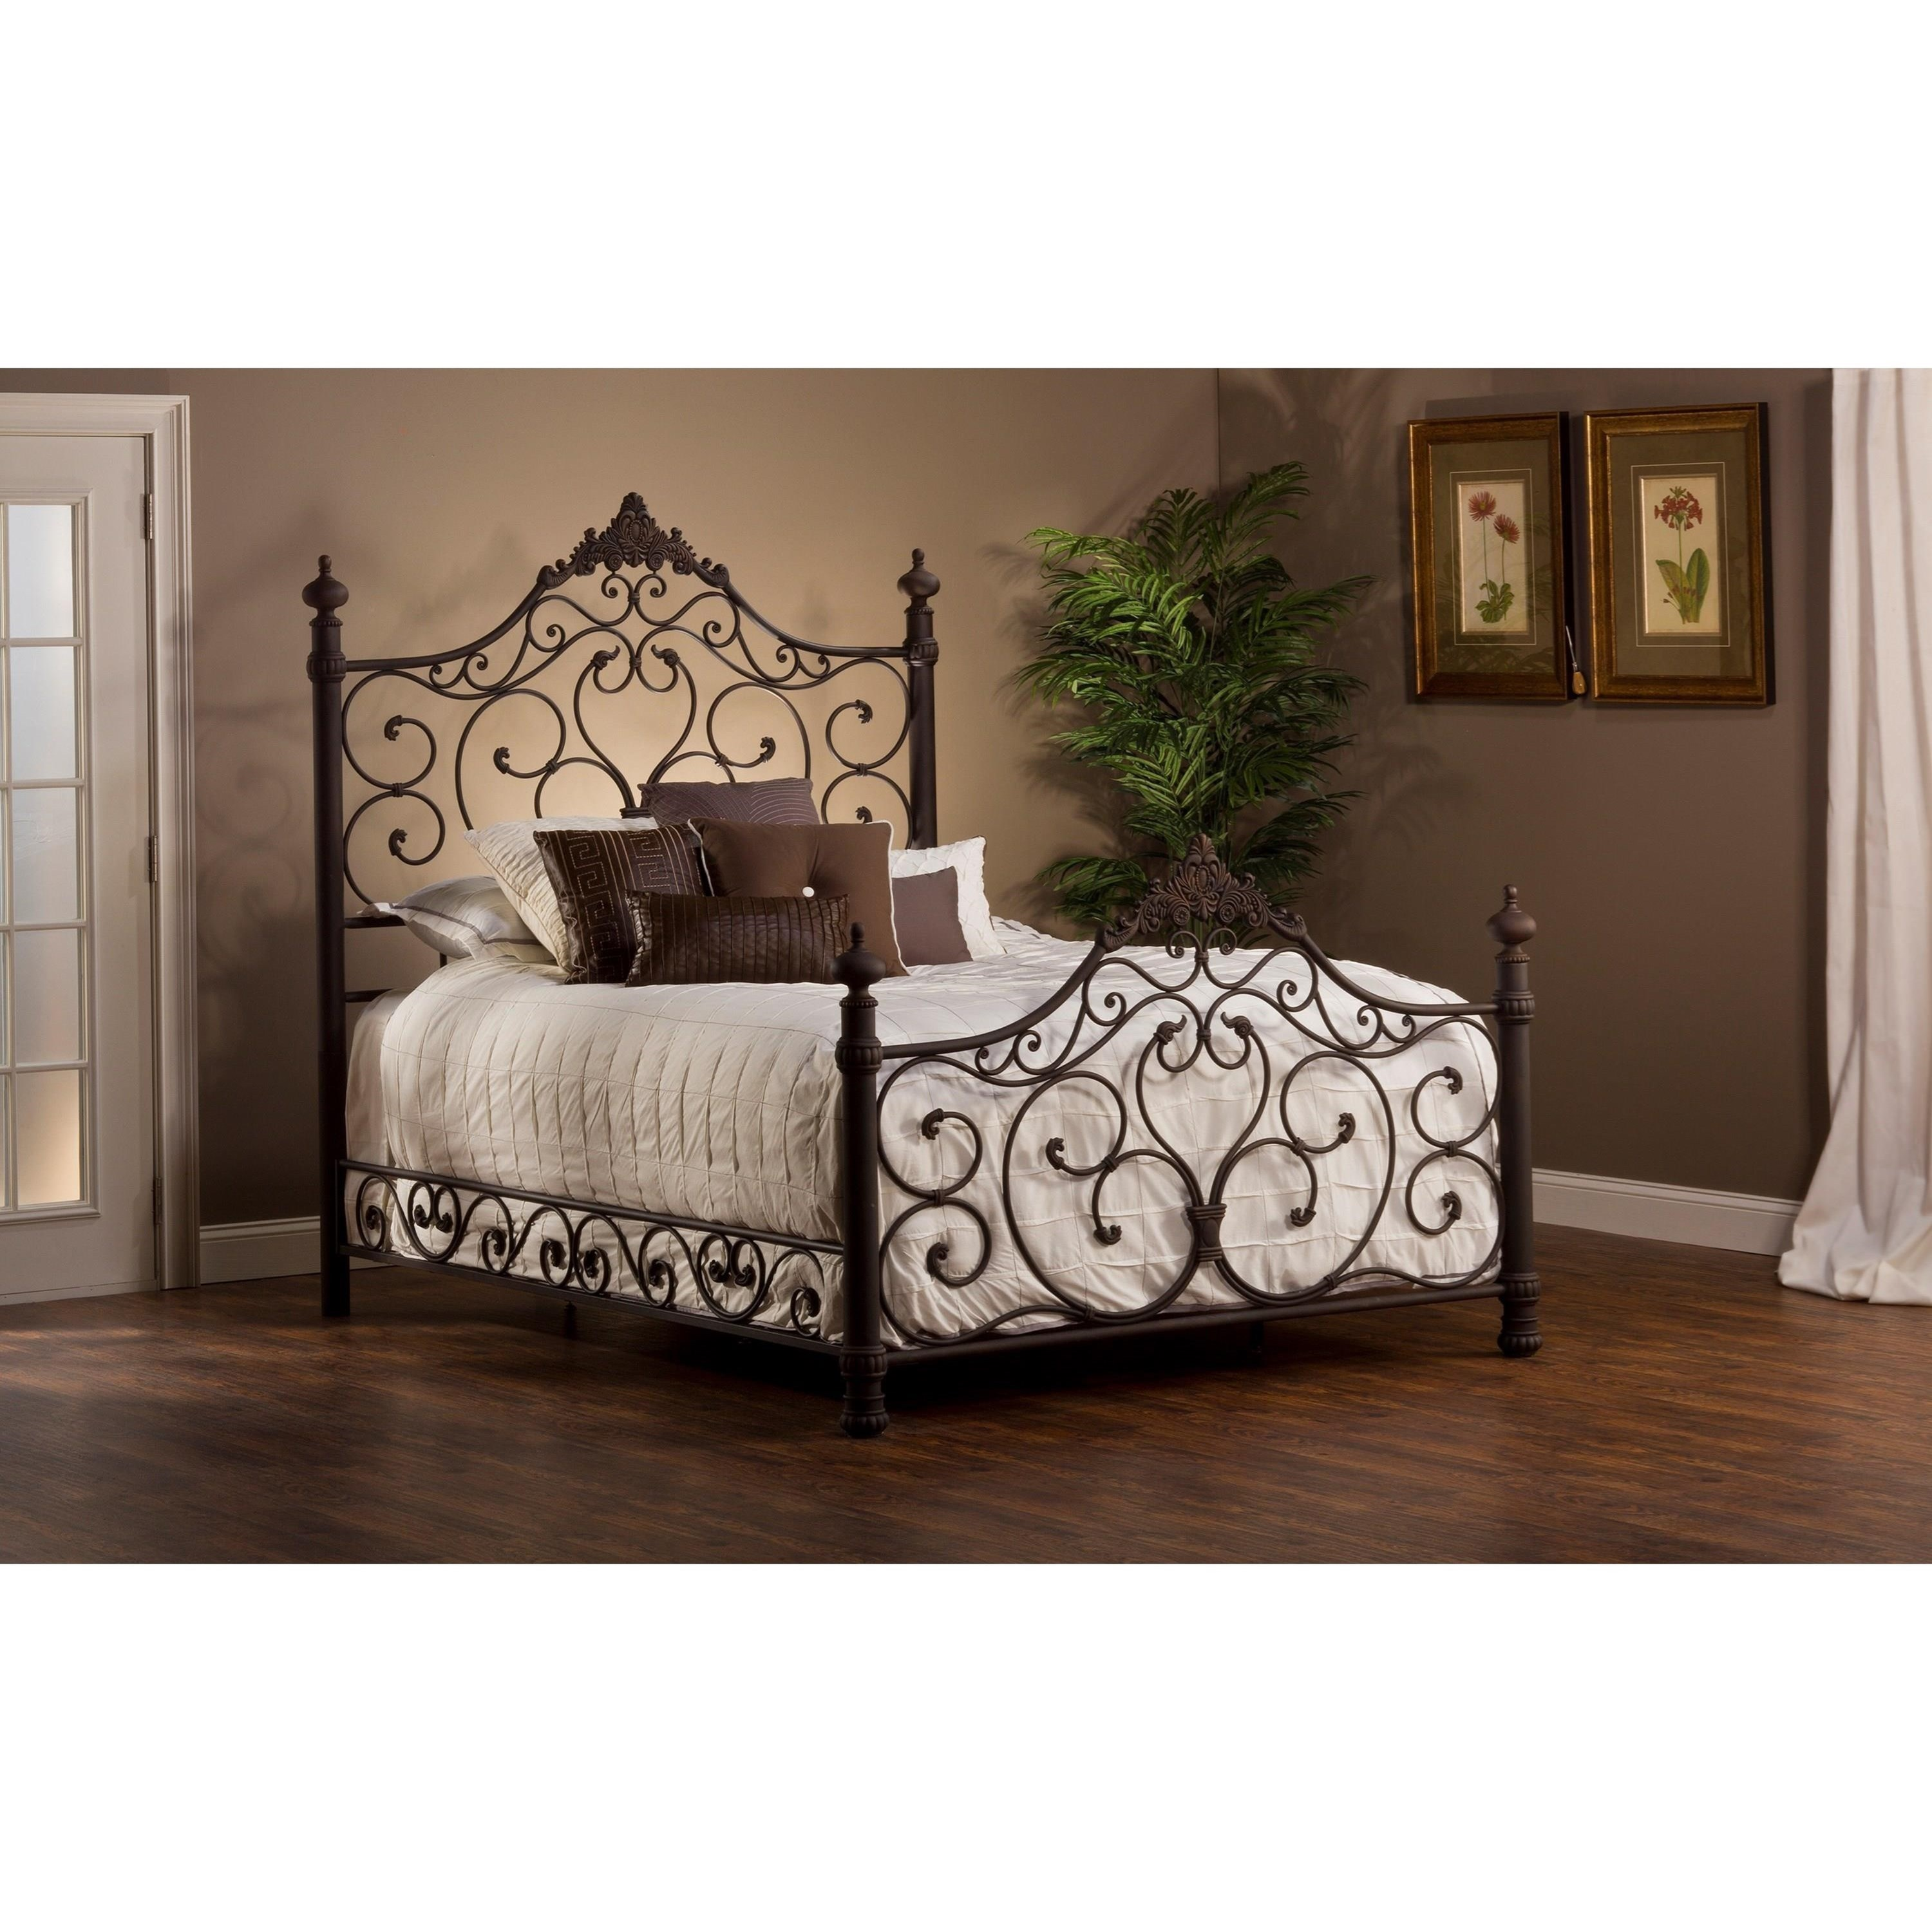 Hillsdale Metal Beds King Bed Set with Rails - Item Number: 1742BKR